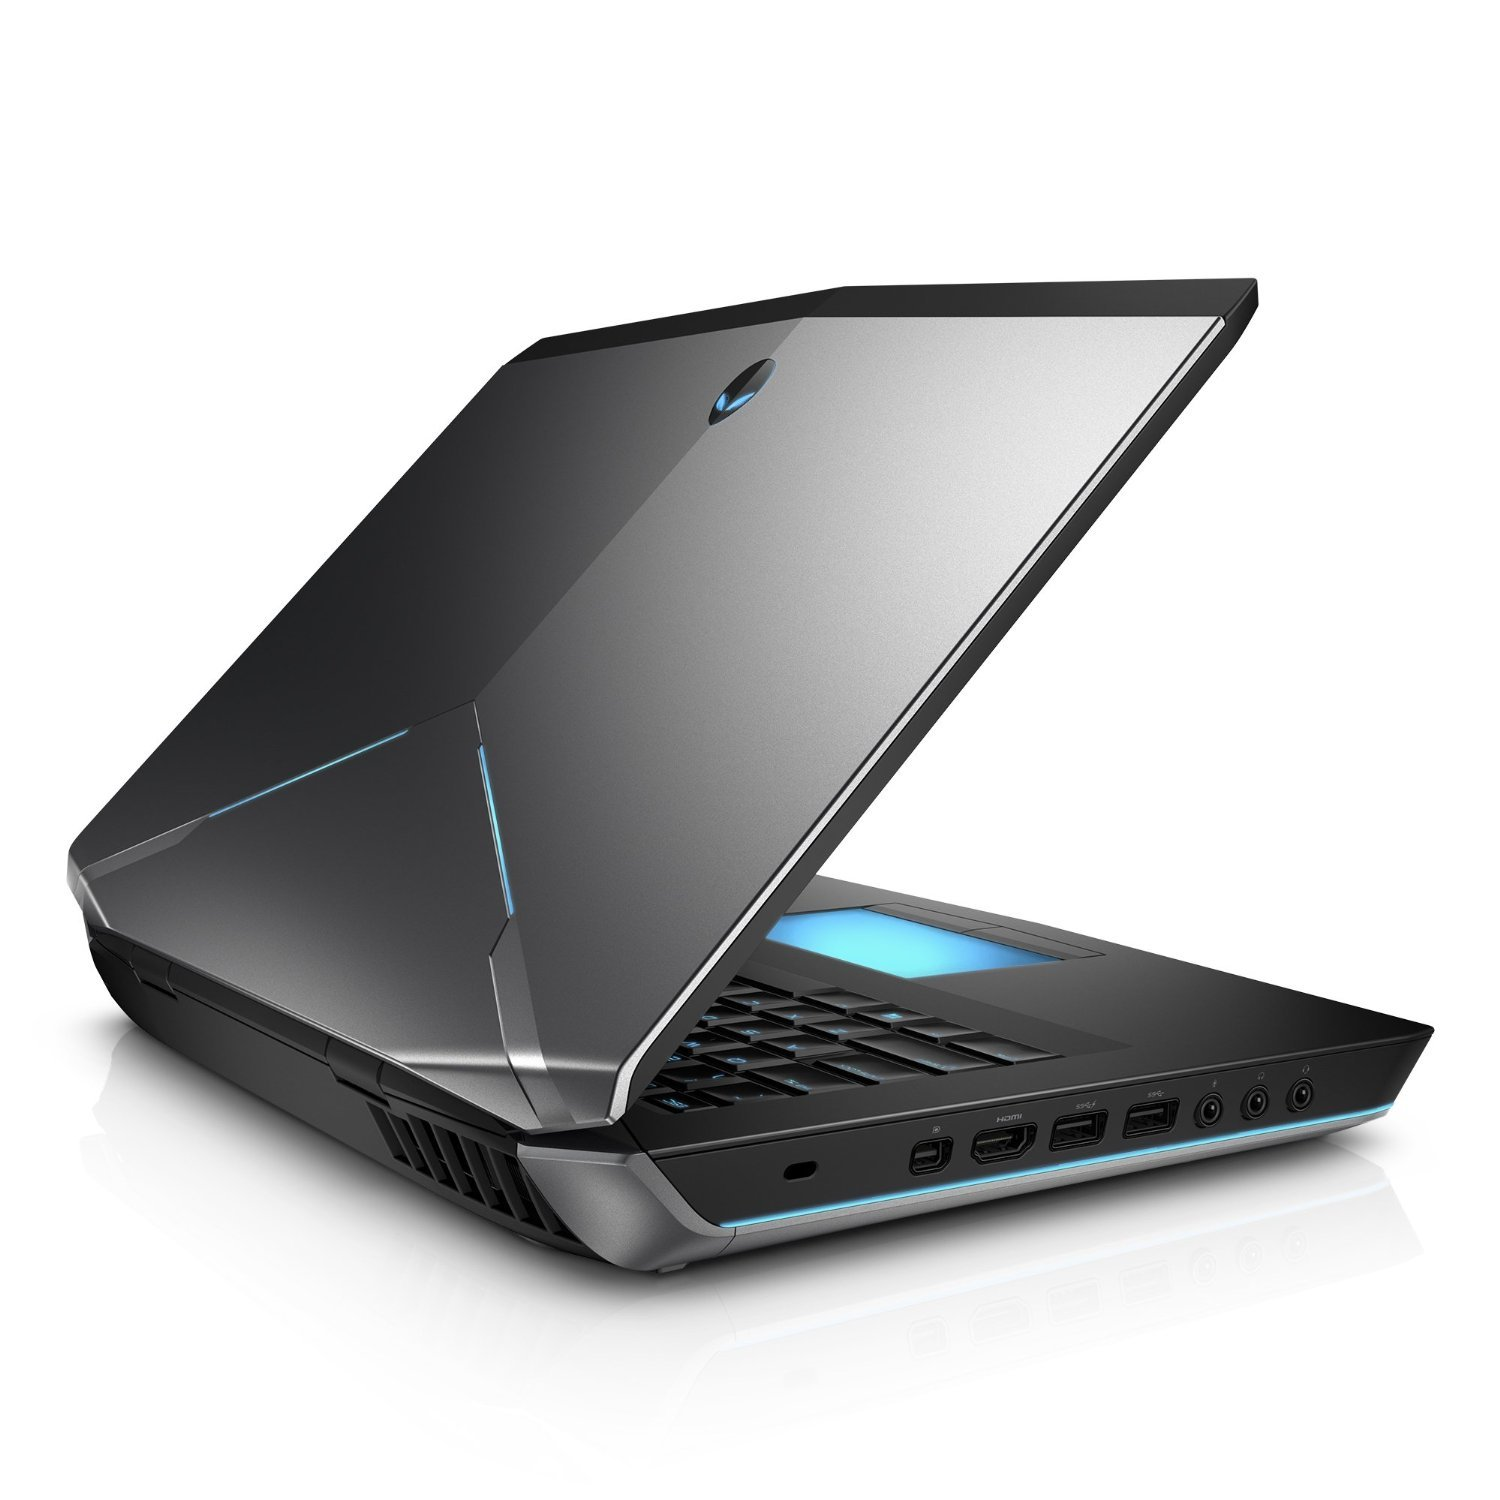 Picture of Alienware 14